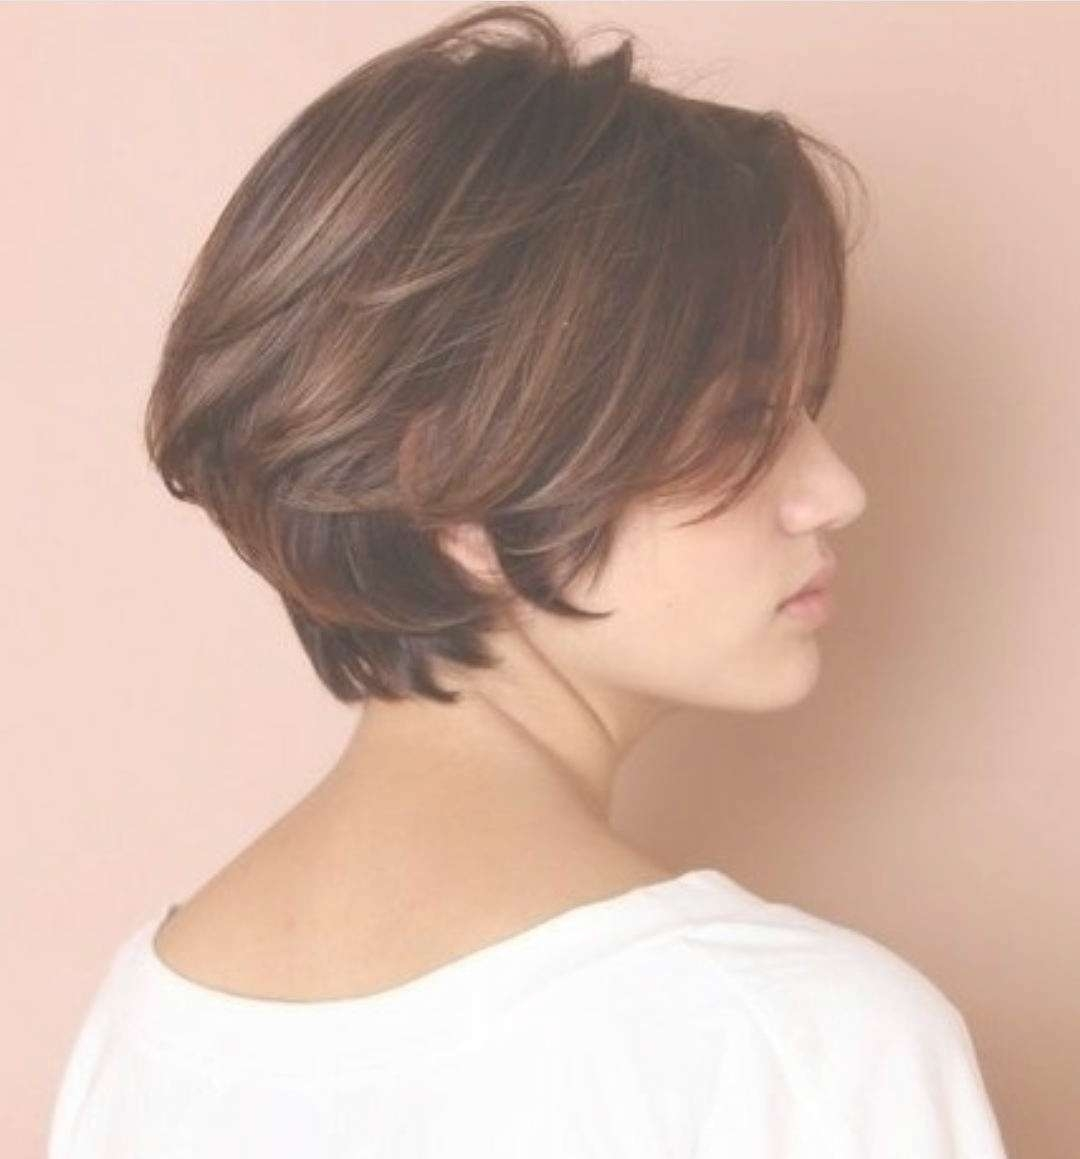 10 Chic Short Bob Haircuts That Balance Your Face Shape! – Short With Regard To Most Recently Bob To Pixie Hairstyles (View 2 of 12)